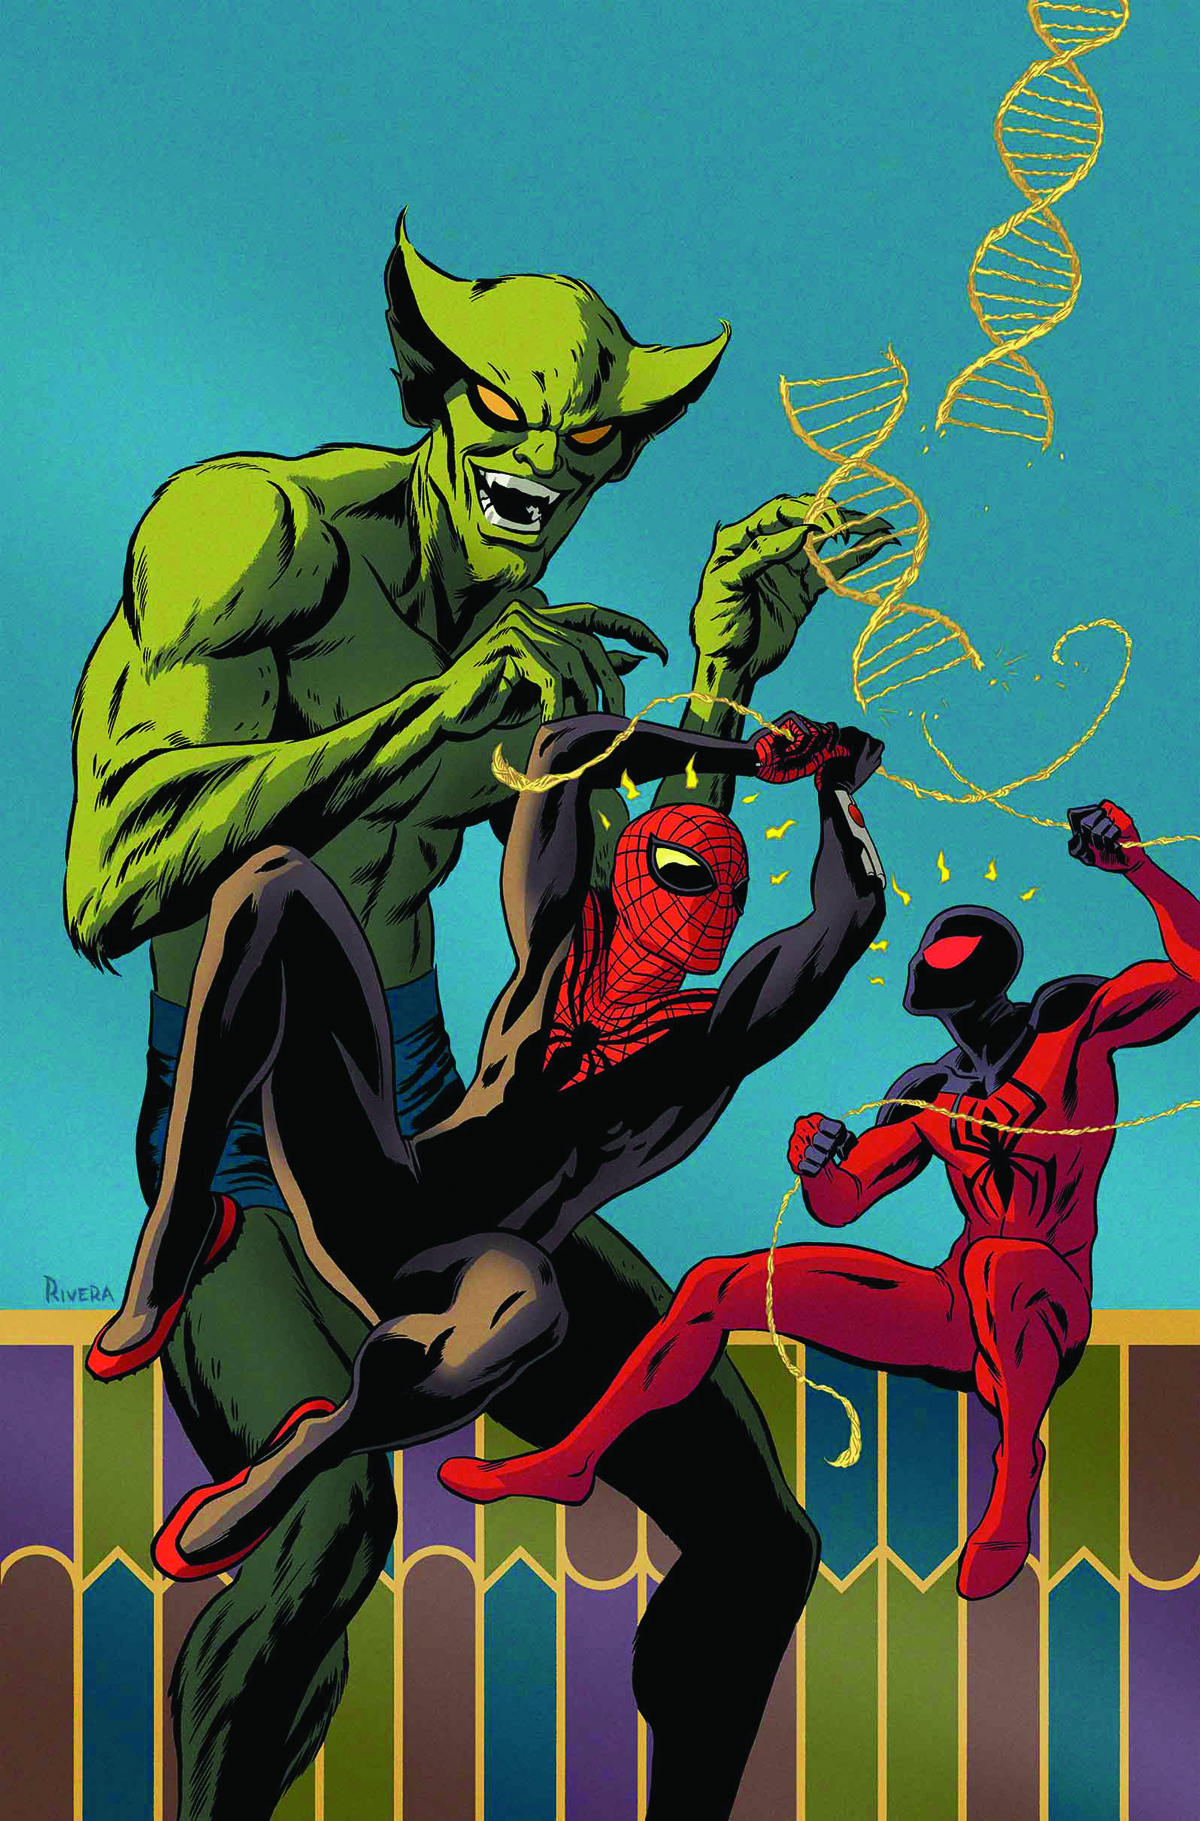 SUPERIOR SPIDER-MAN TEAM UP #2 NOW